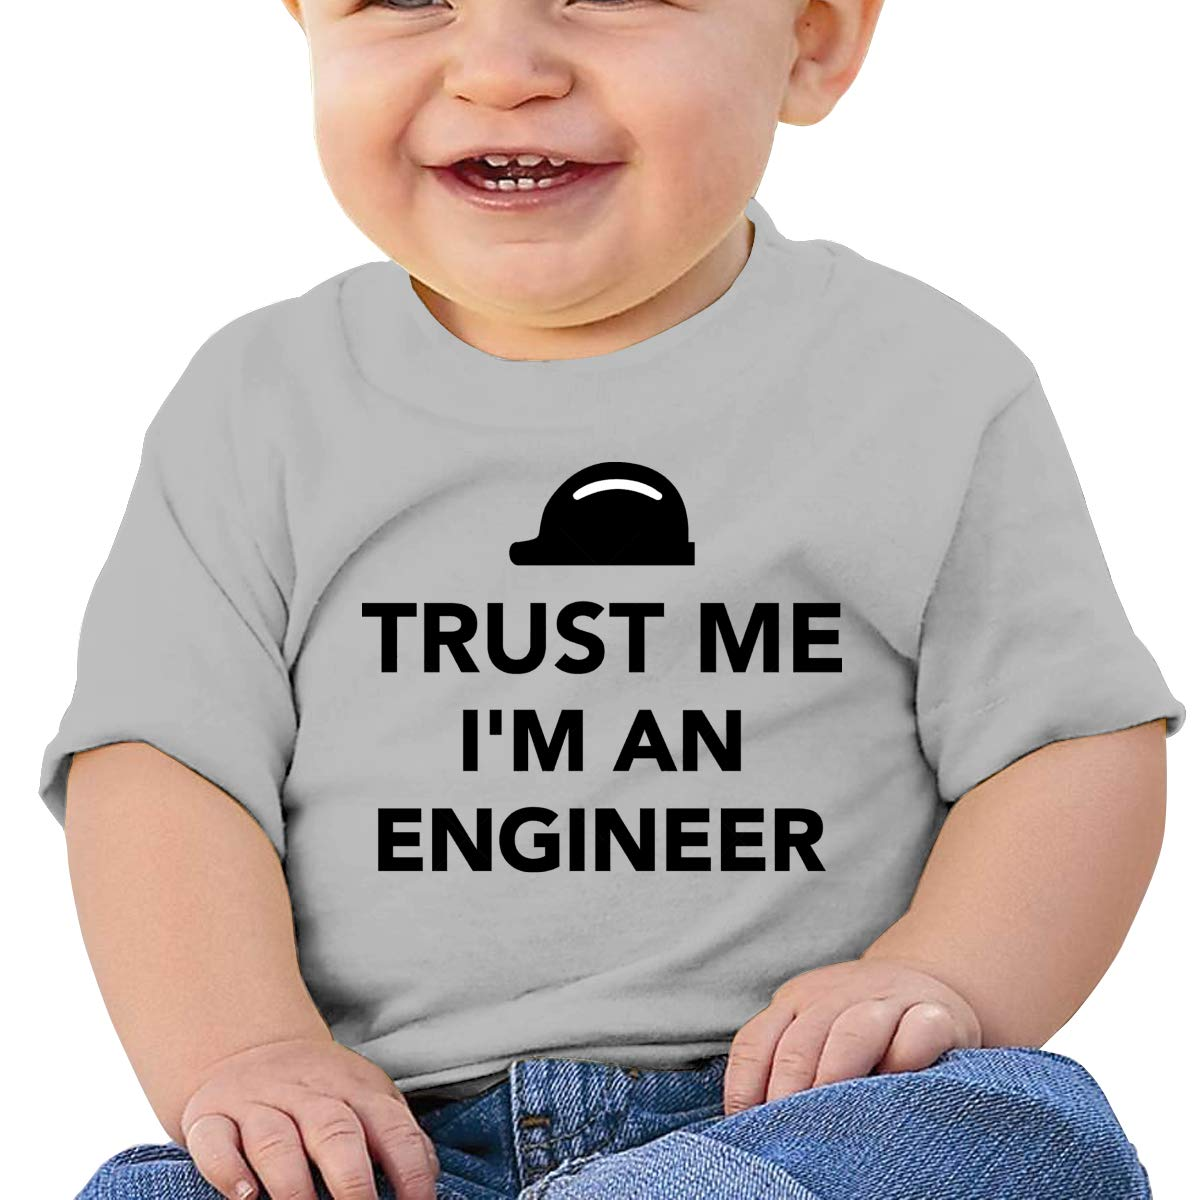 Trust Me Im an Engineer Baby T-Shirt Toddler Cotton T Shirts Fashion Graphic Tees for 6M-2T Baby